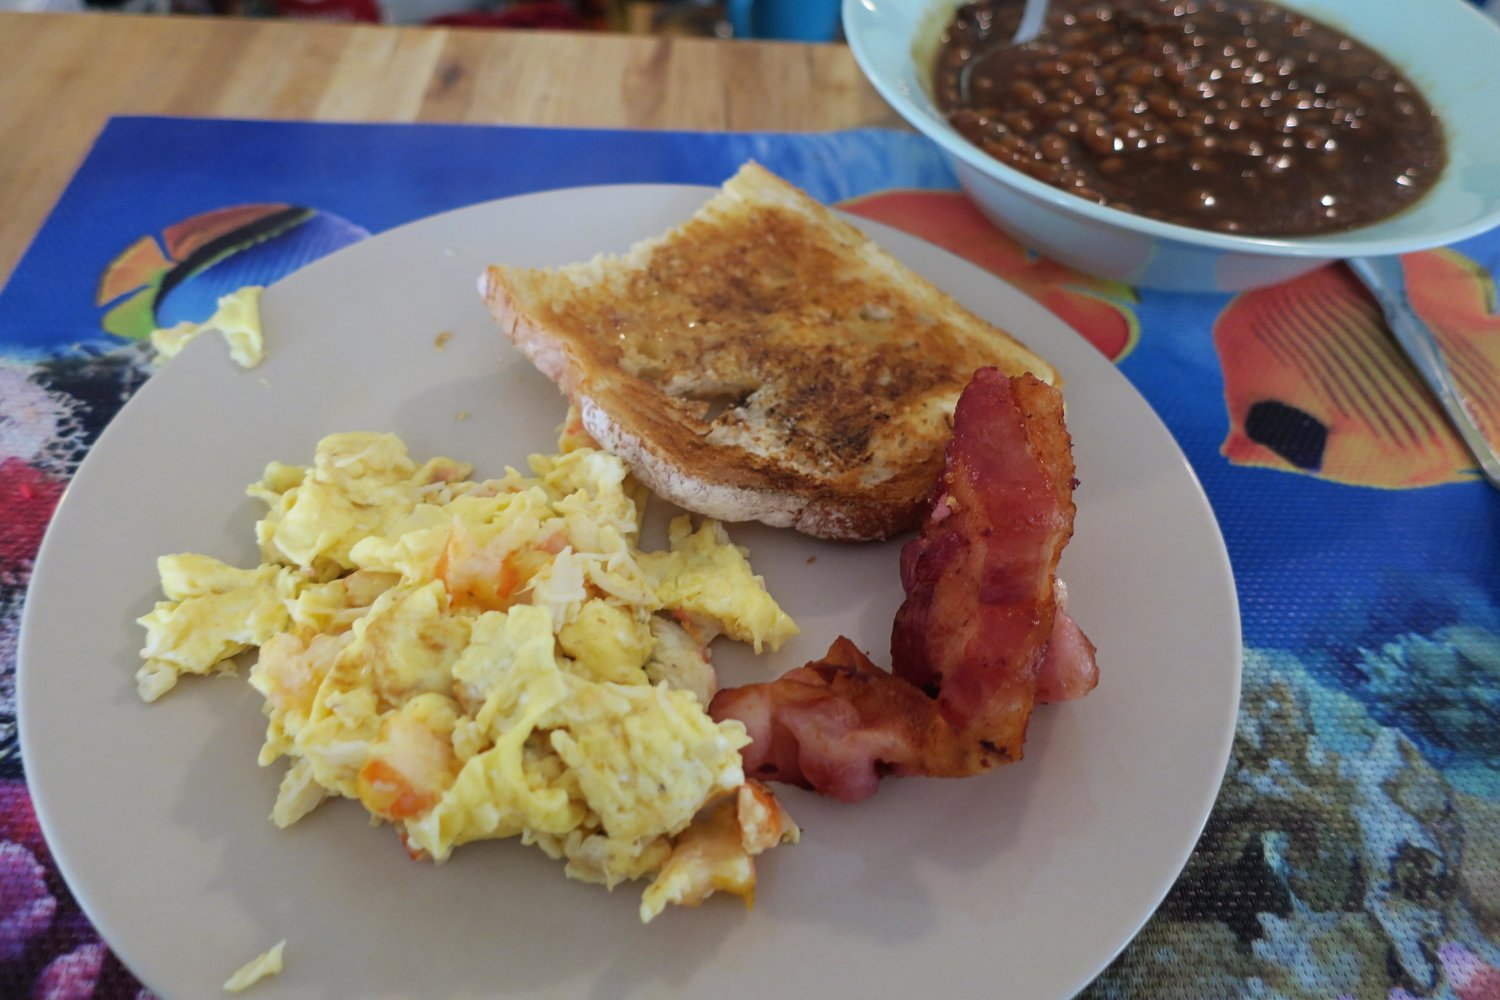 we spent the majority of the morning unwrapping gifts playing with them and making the best christmas breakfast scrambled eggs with the leftover shrimp - Best Christmas Breakfast